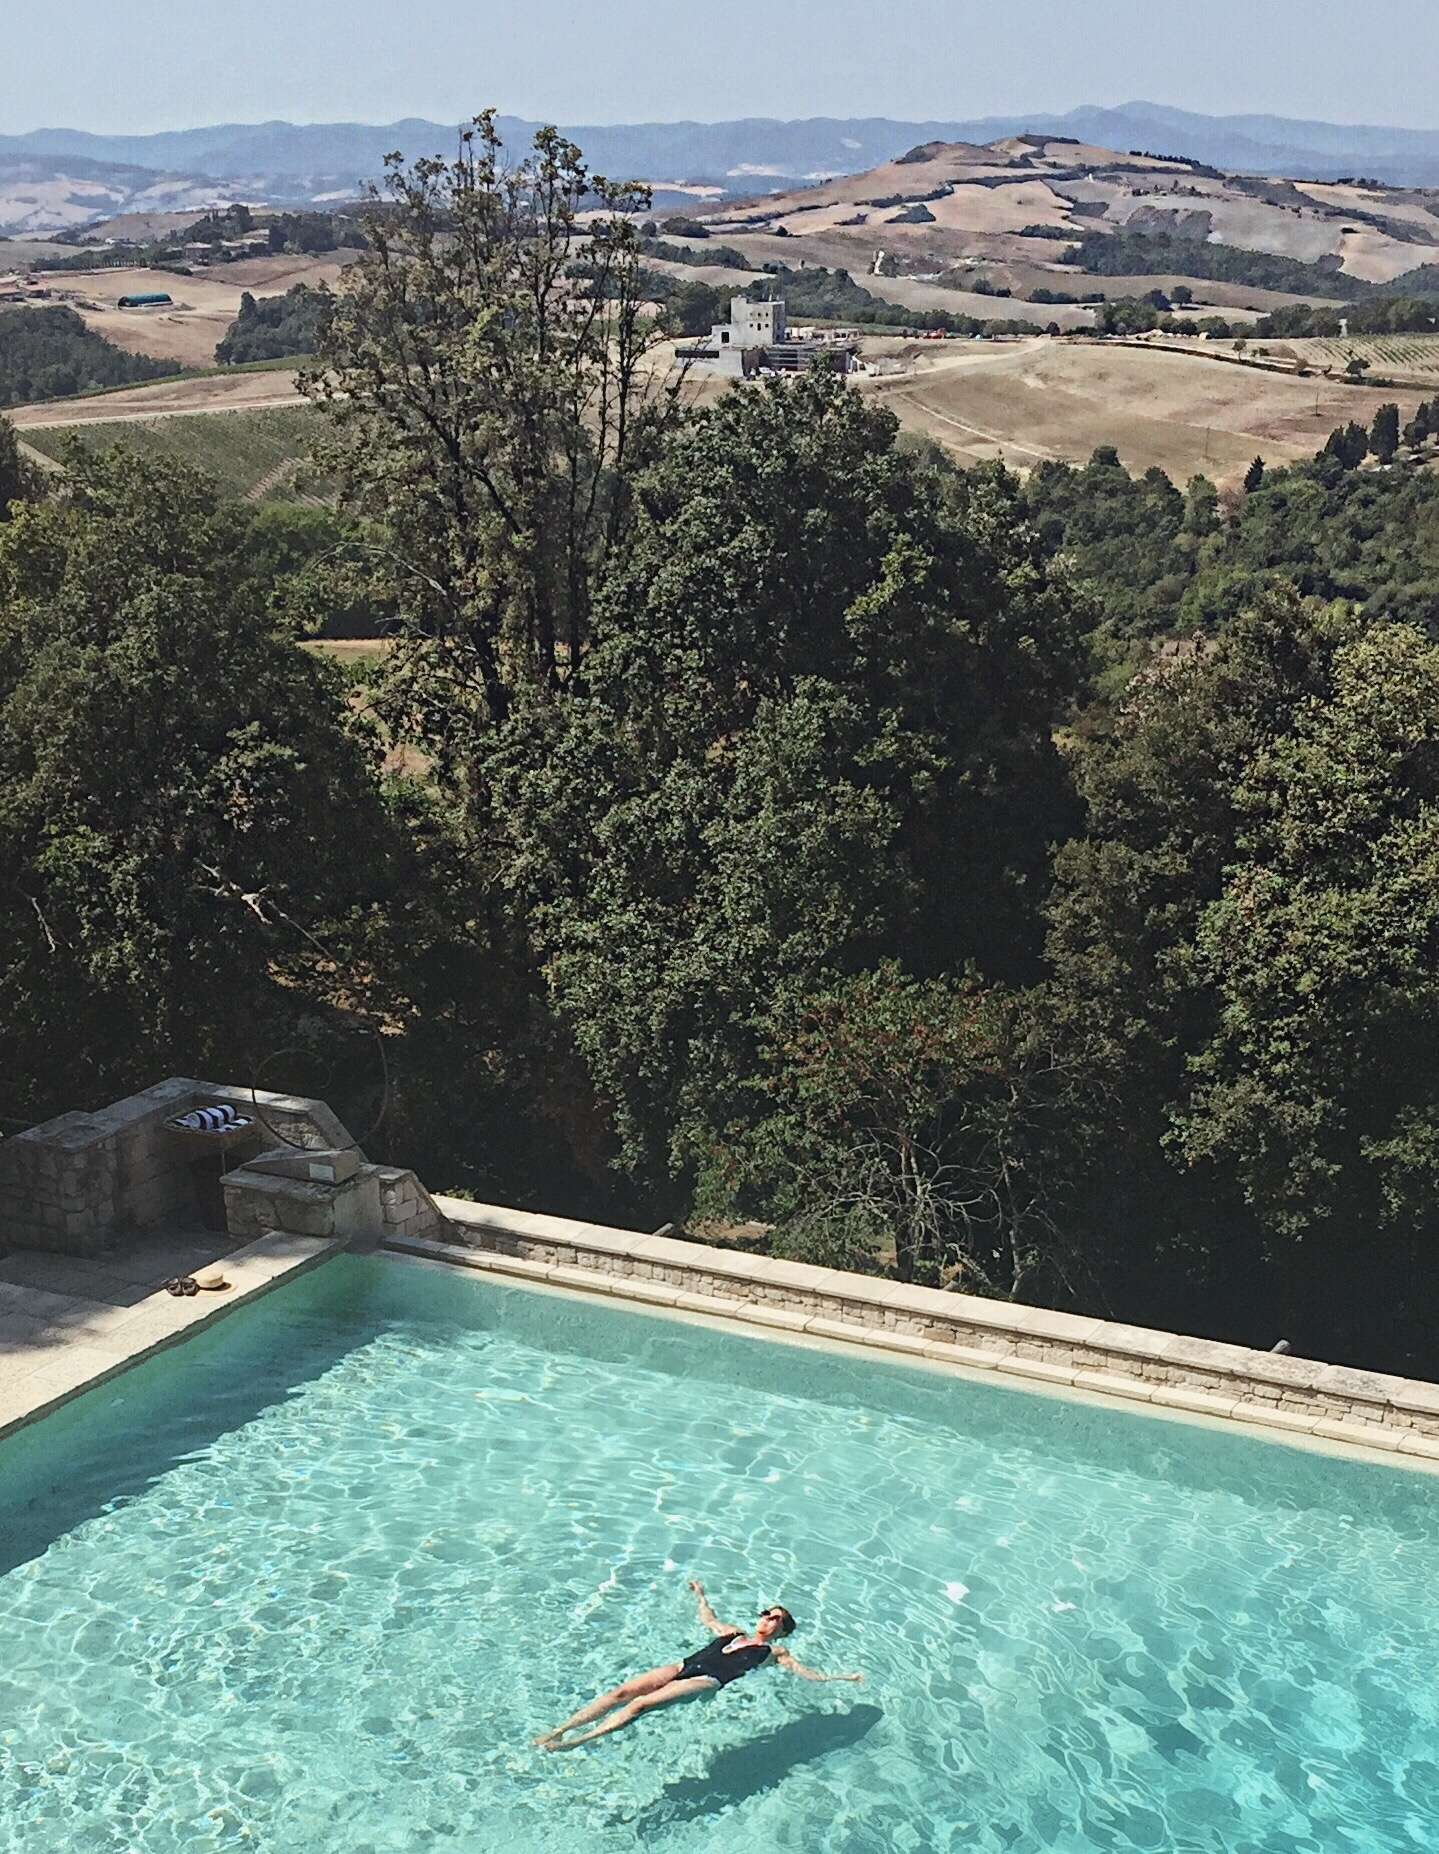 Infinity pool at Borgo Pignano